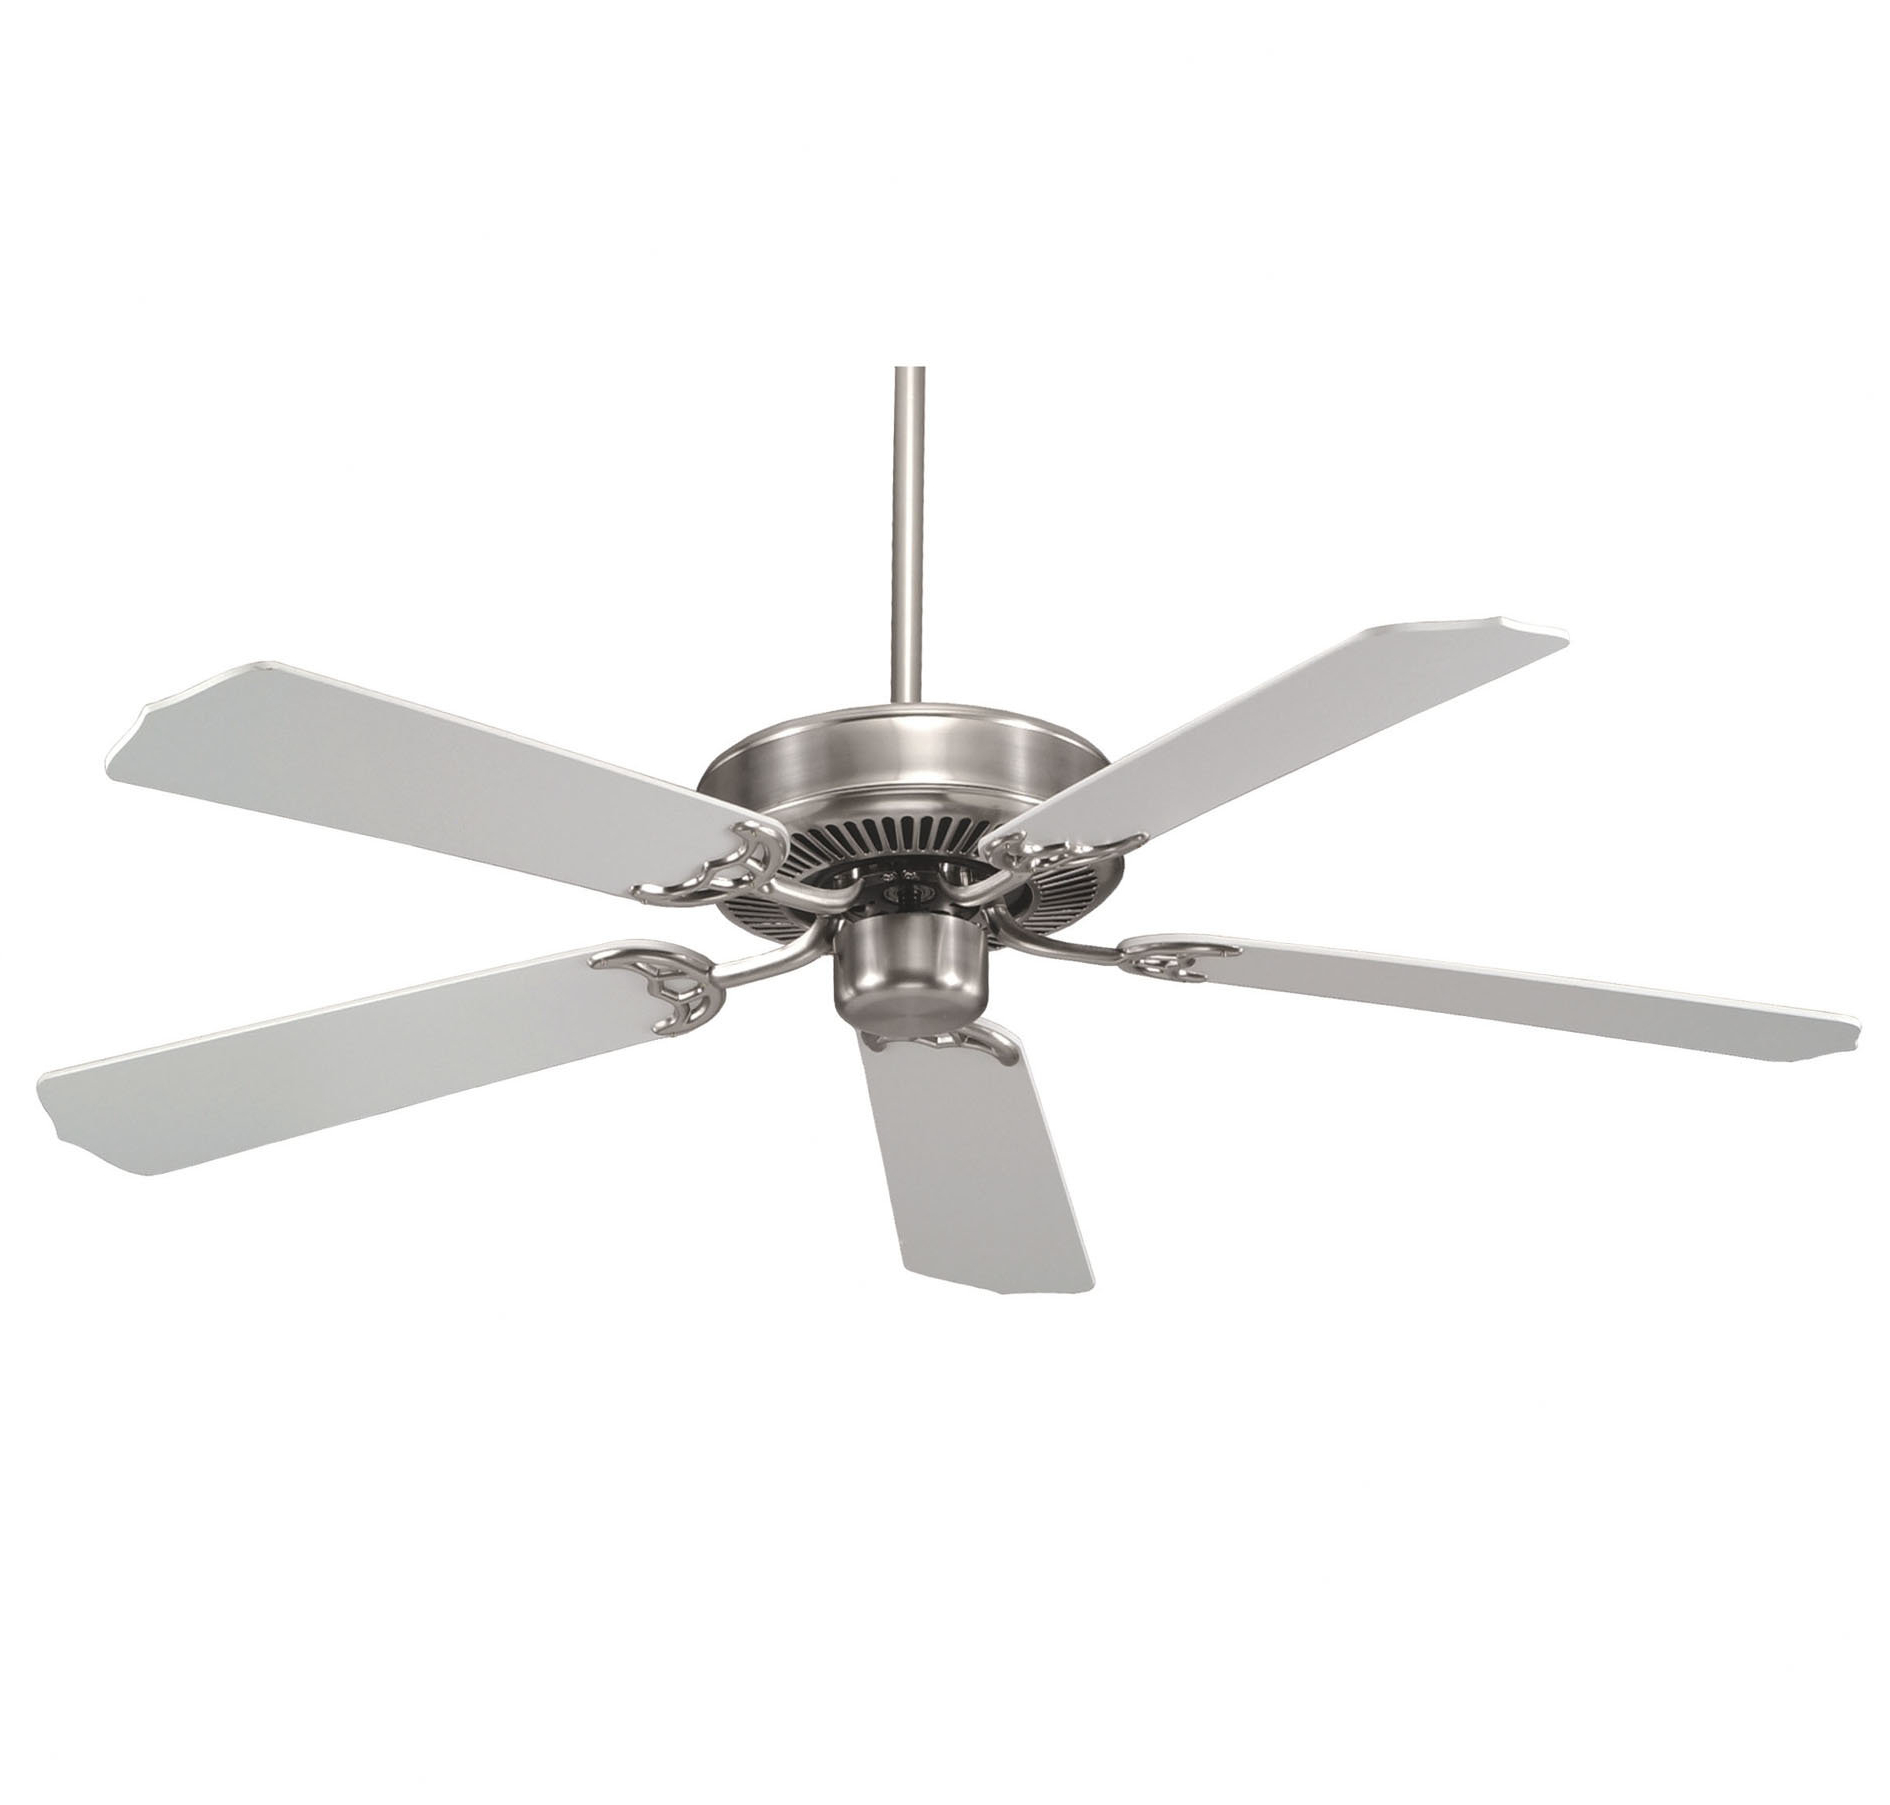 "52"" Weatherall 5 Blade Ceiling Fan Regarding Popular Hamlett 5 Blade Ceiling Fans (View 5 of 20)"